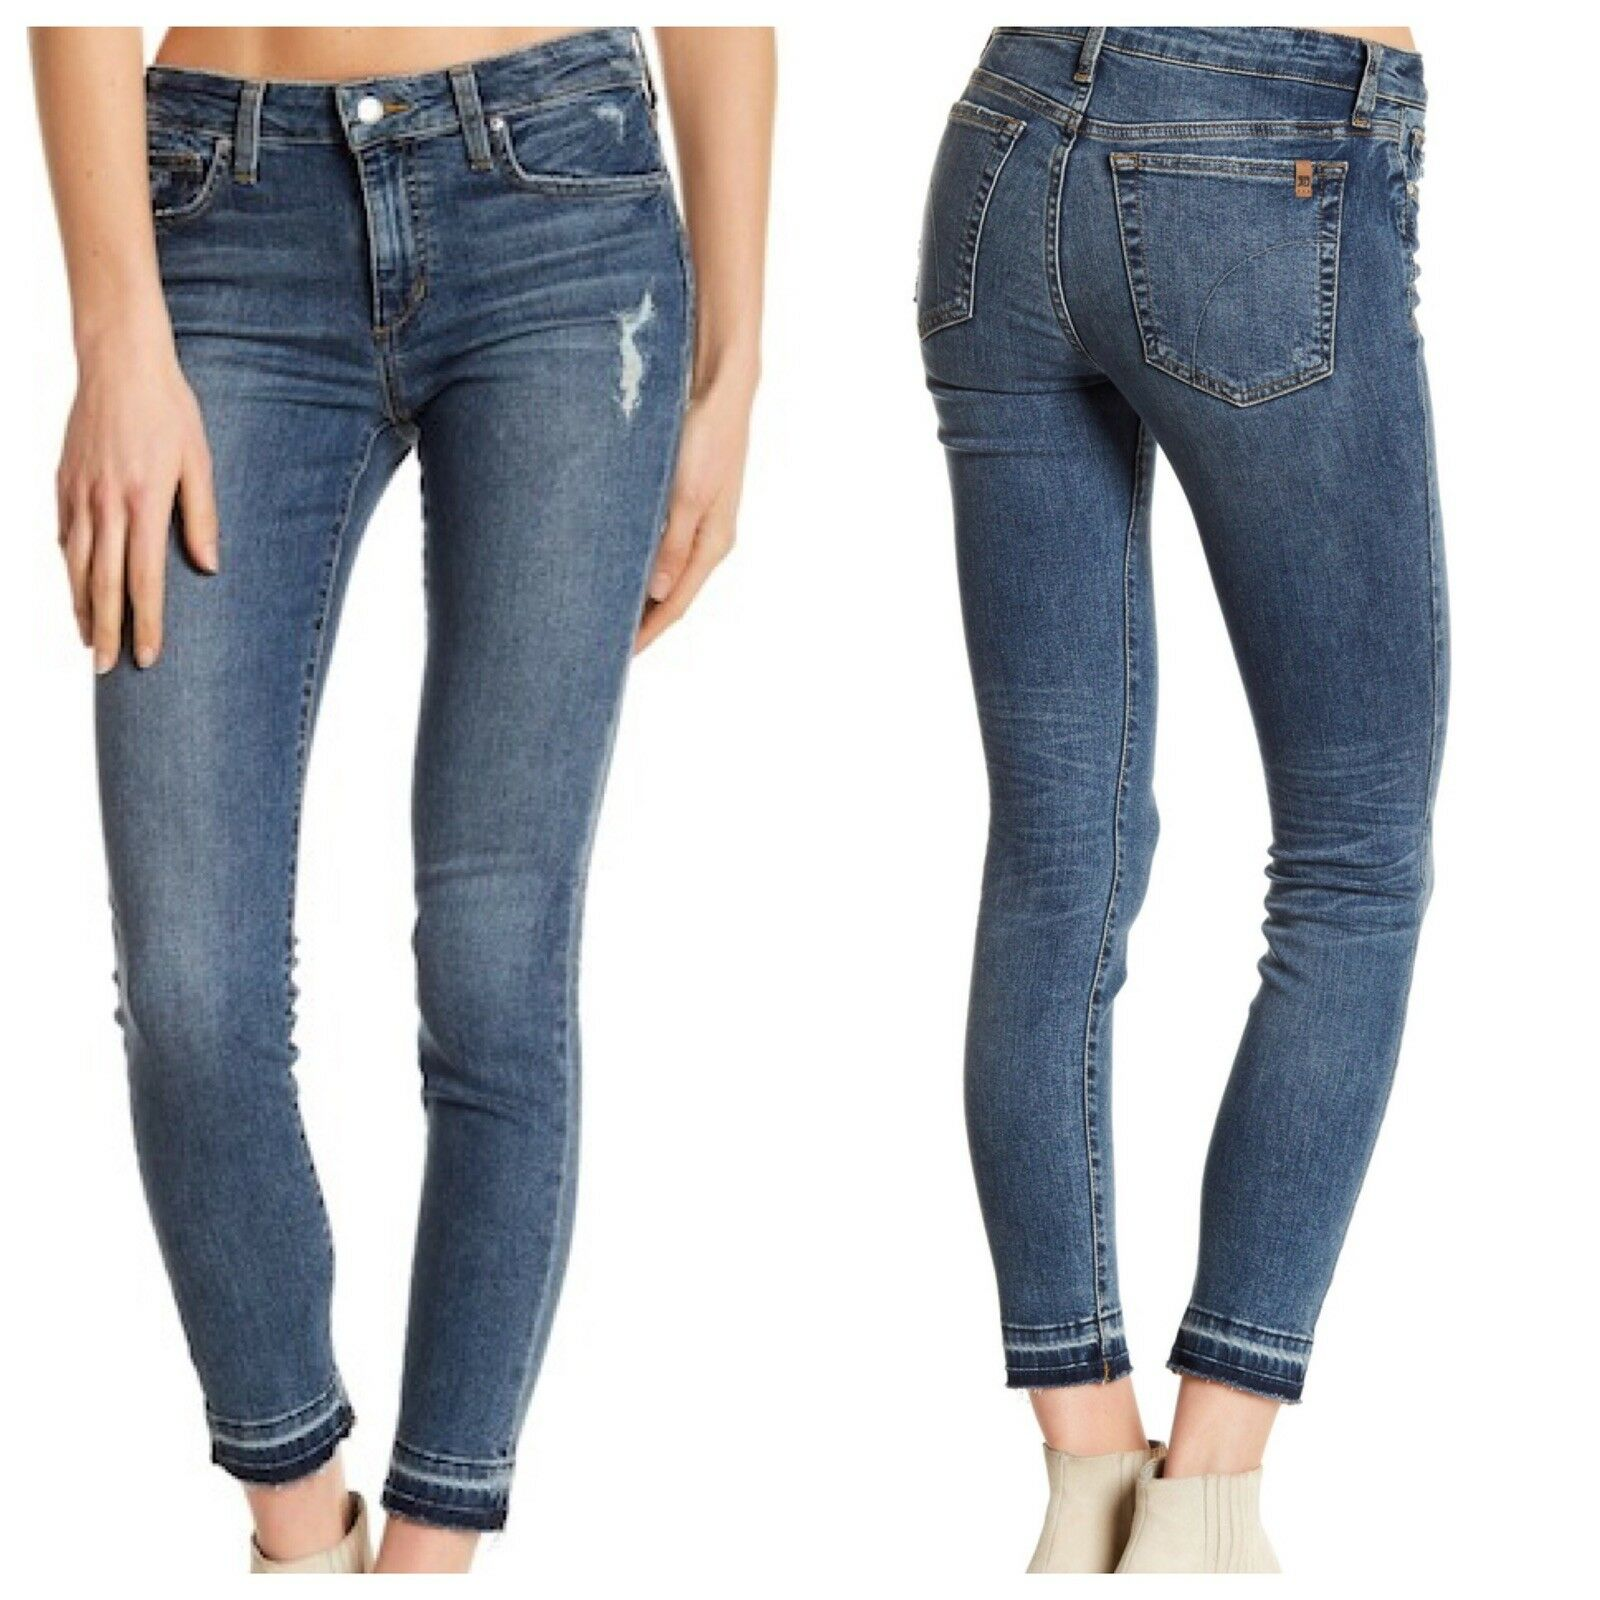 NWT Joes Jeans Released Hem Ankle Skinny Mia Glam style 26 27